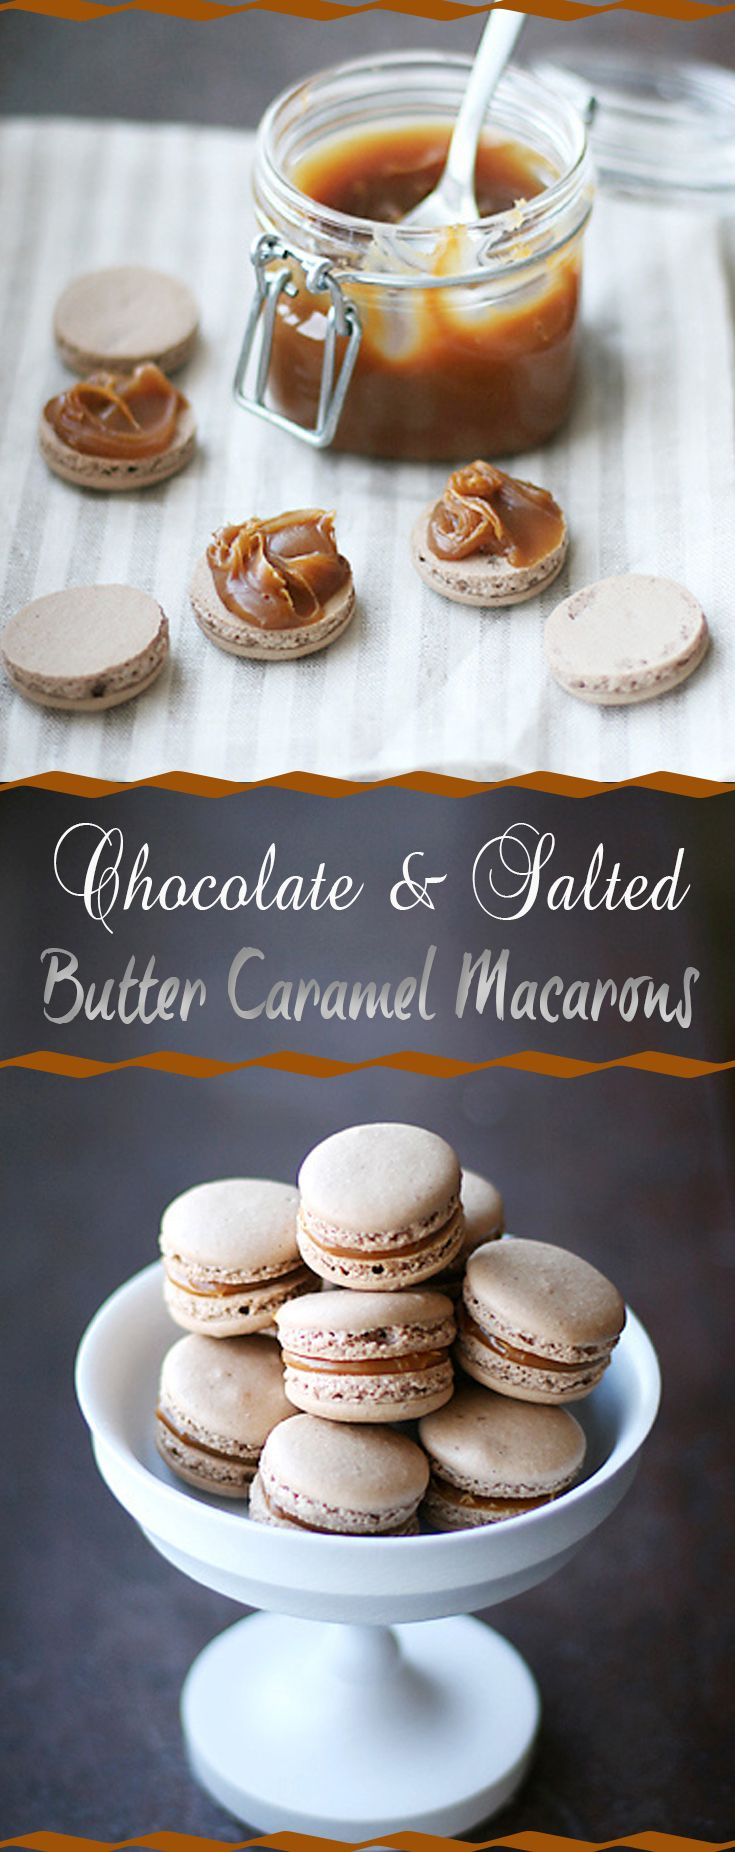 1000+ images about Macarons!! Yay!!! on Pinterest | Macaroons, Macaron ...